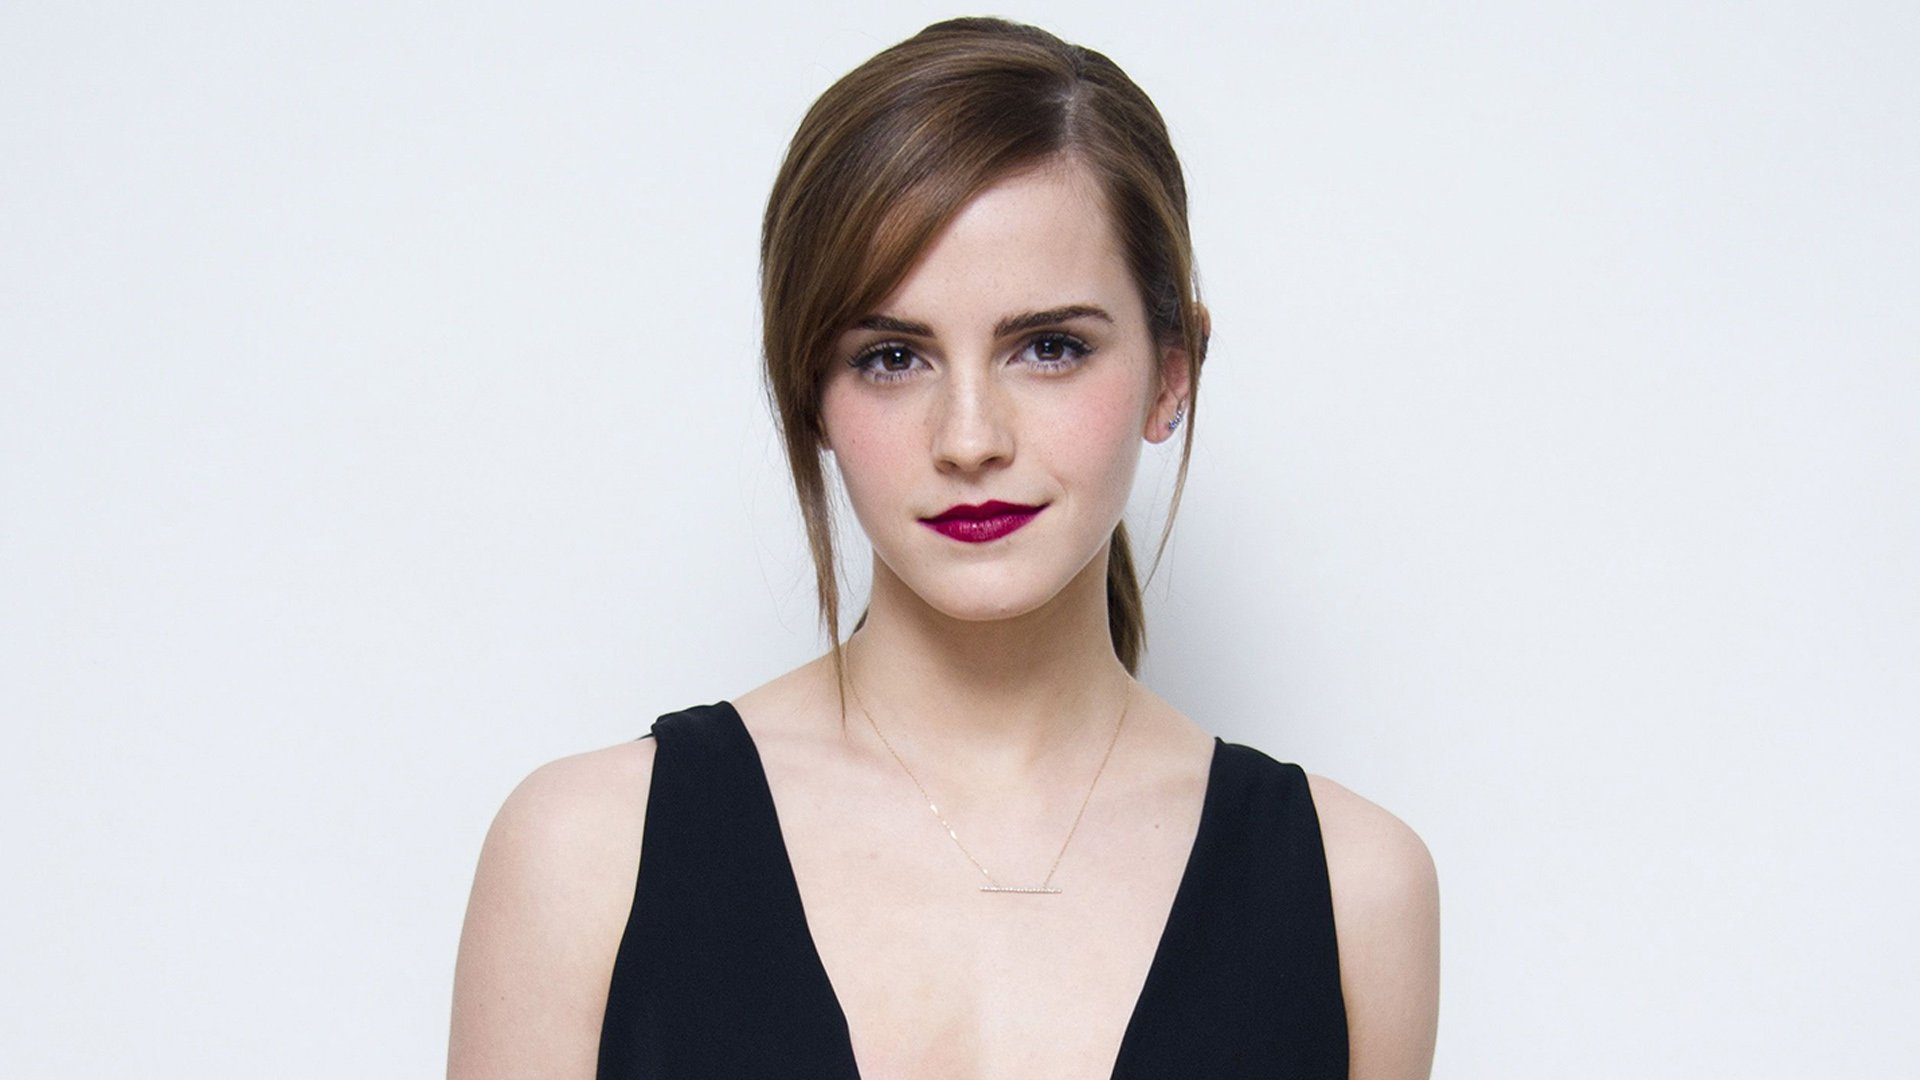 Emma watson wallpapers high resolution wallpapersafari - Emma watson wallpaper free download ...